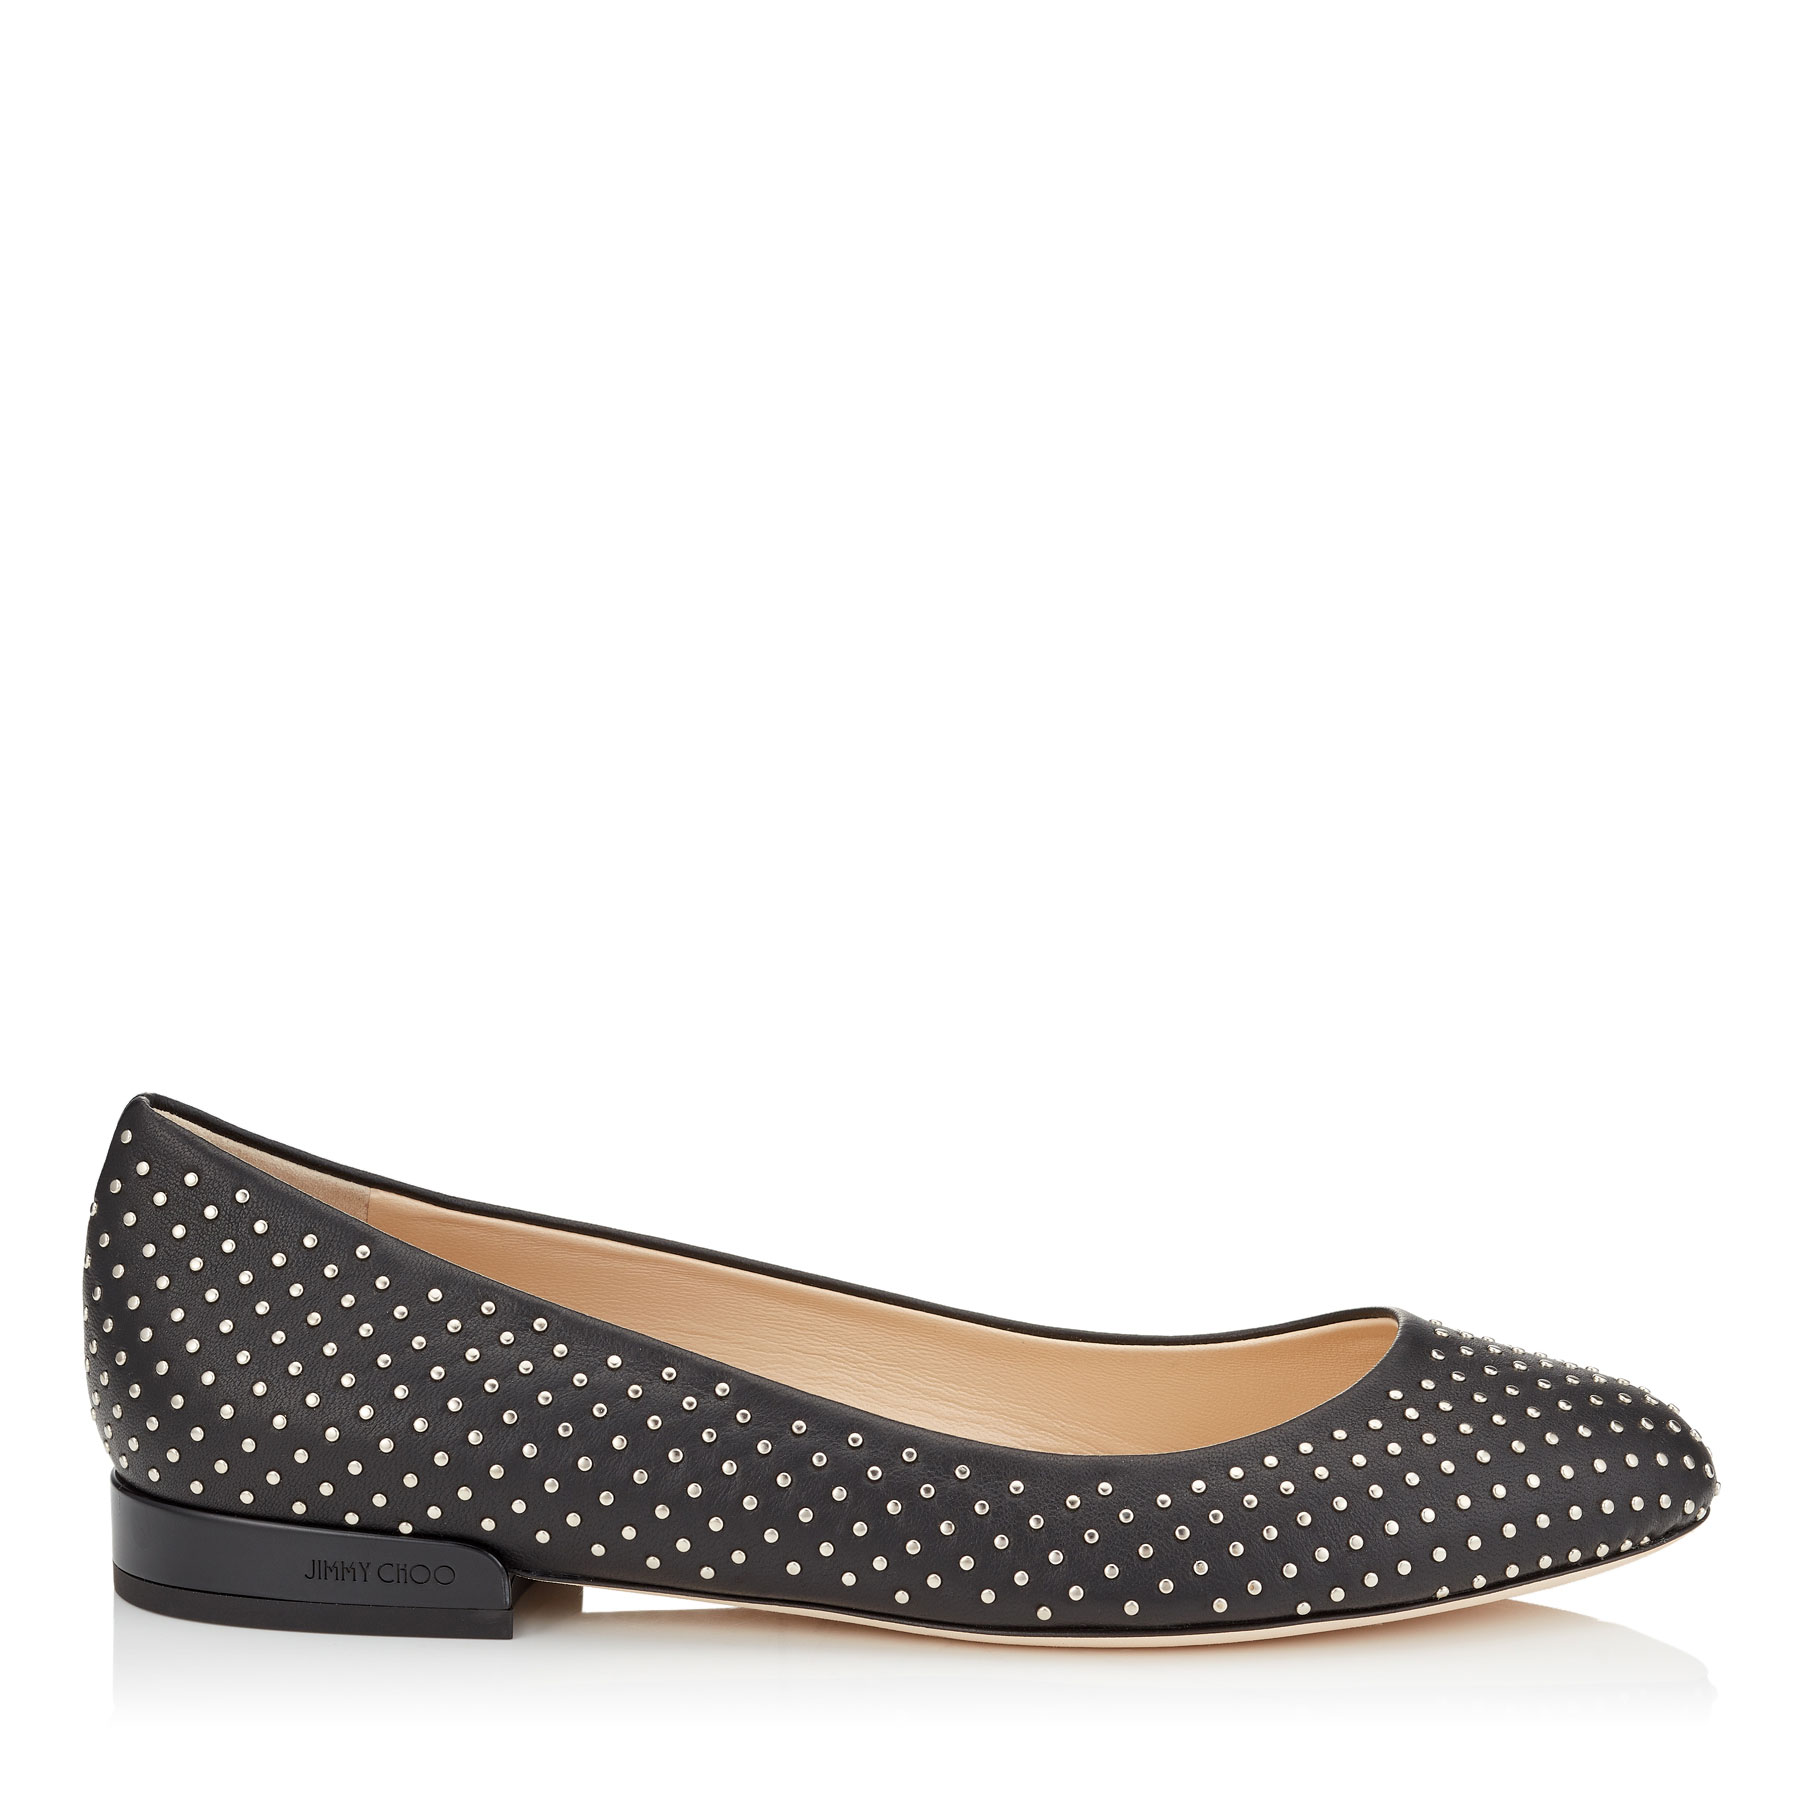 JESSIE FLAT Black Nappa Leather Round Toe Pumps with Silver Micro Studs by Jimmy Choo